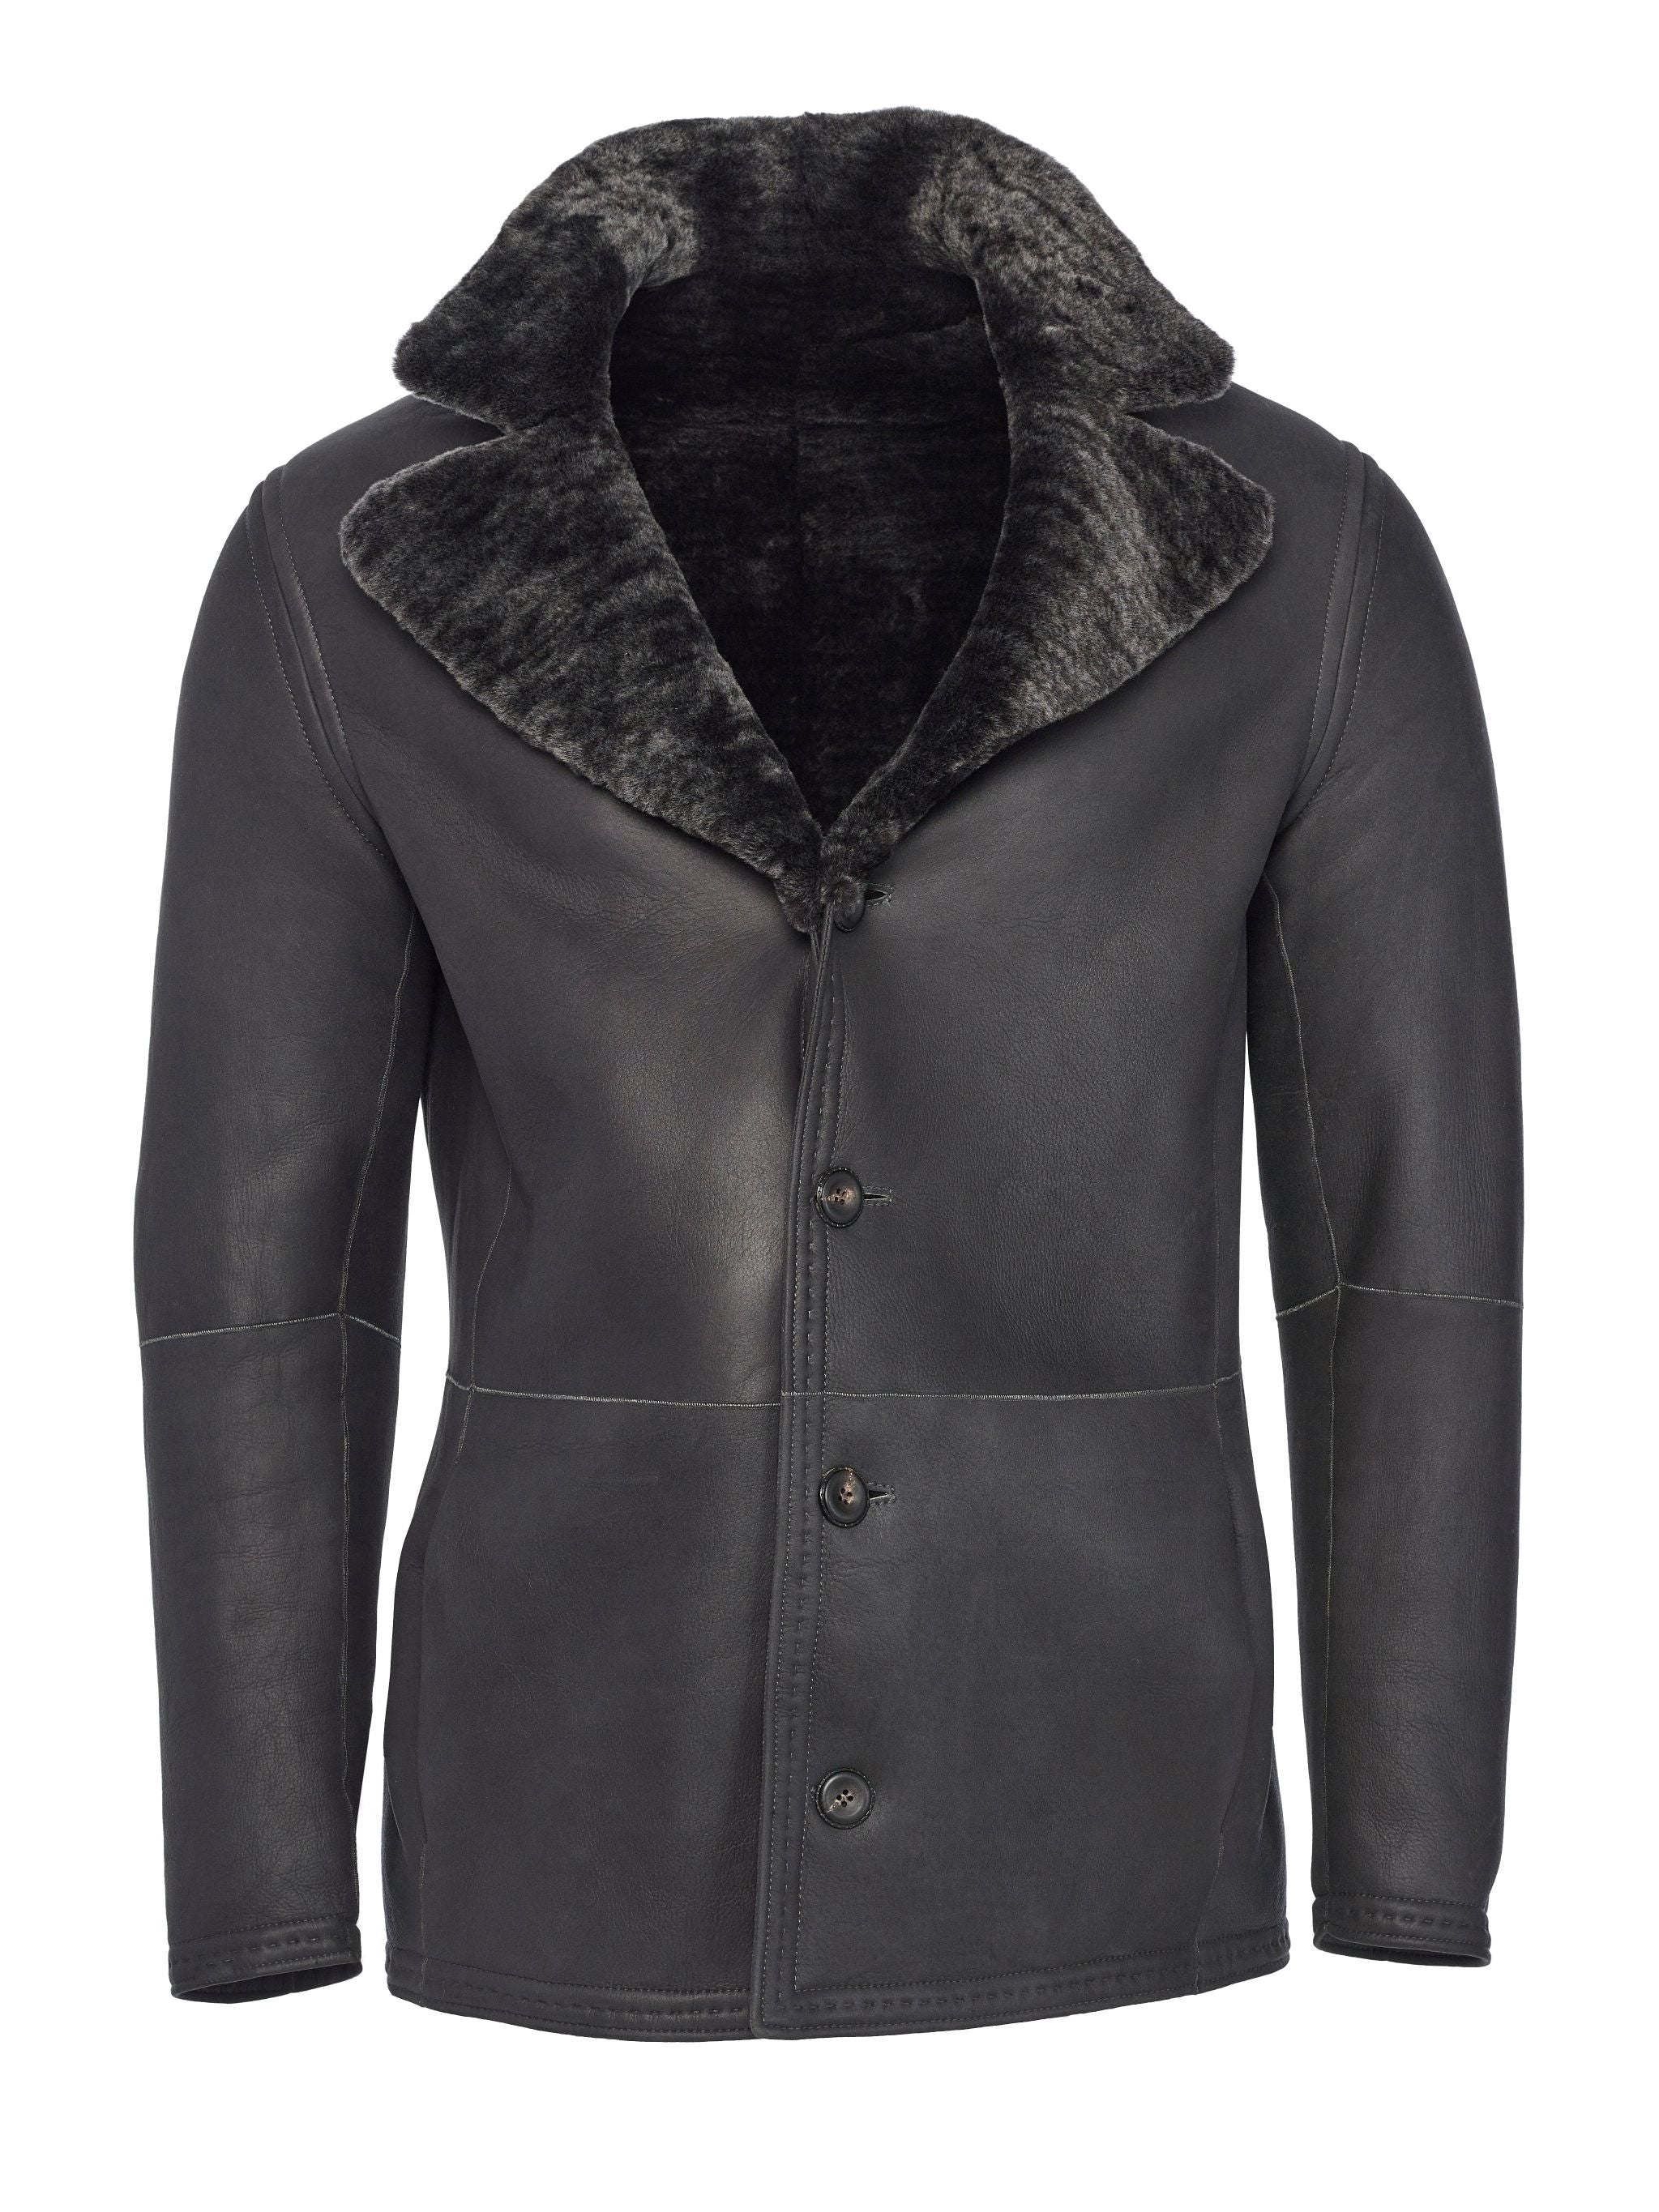 Nappa front side of reversible shearling